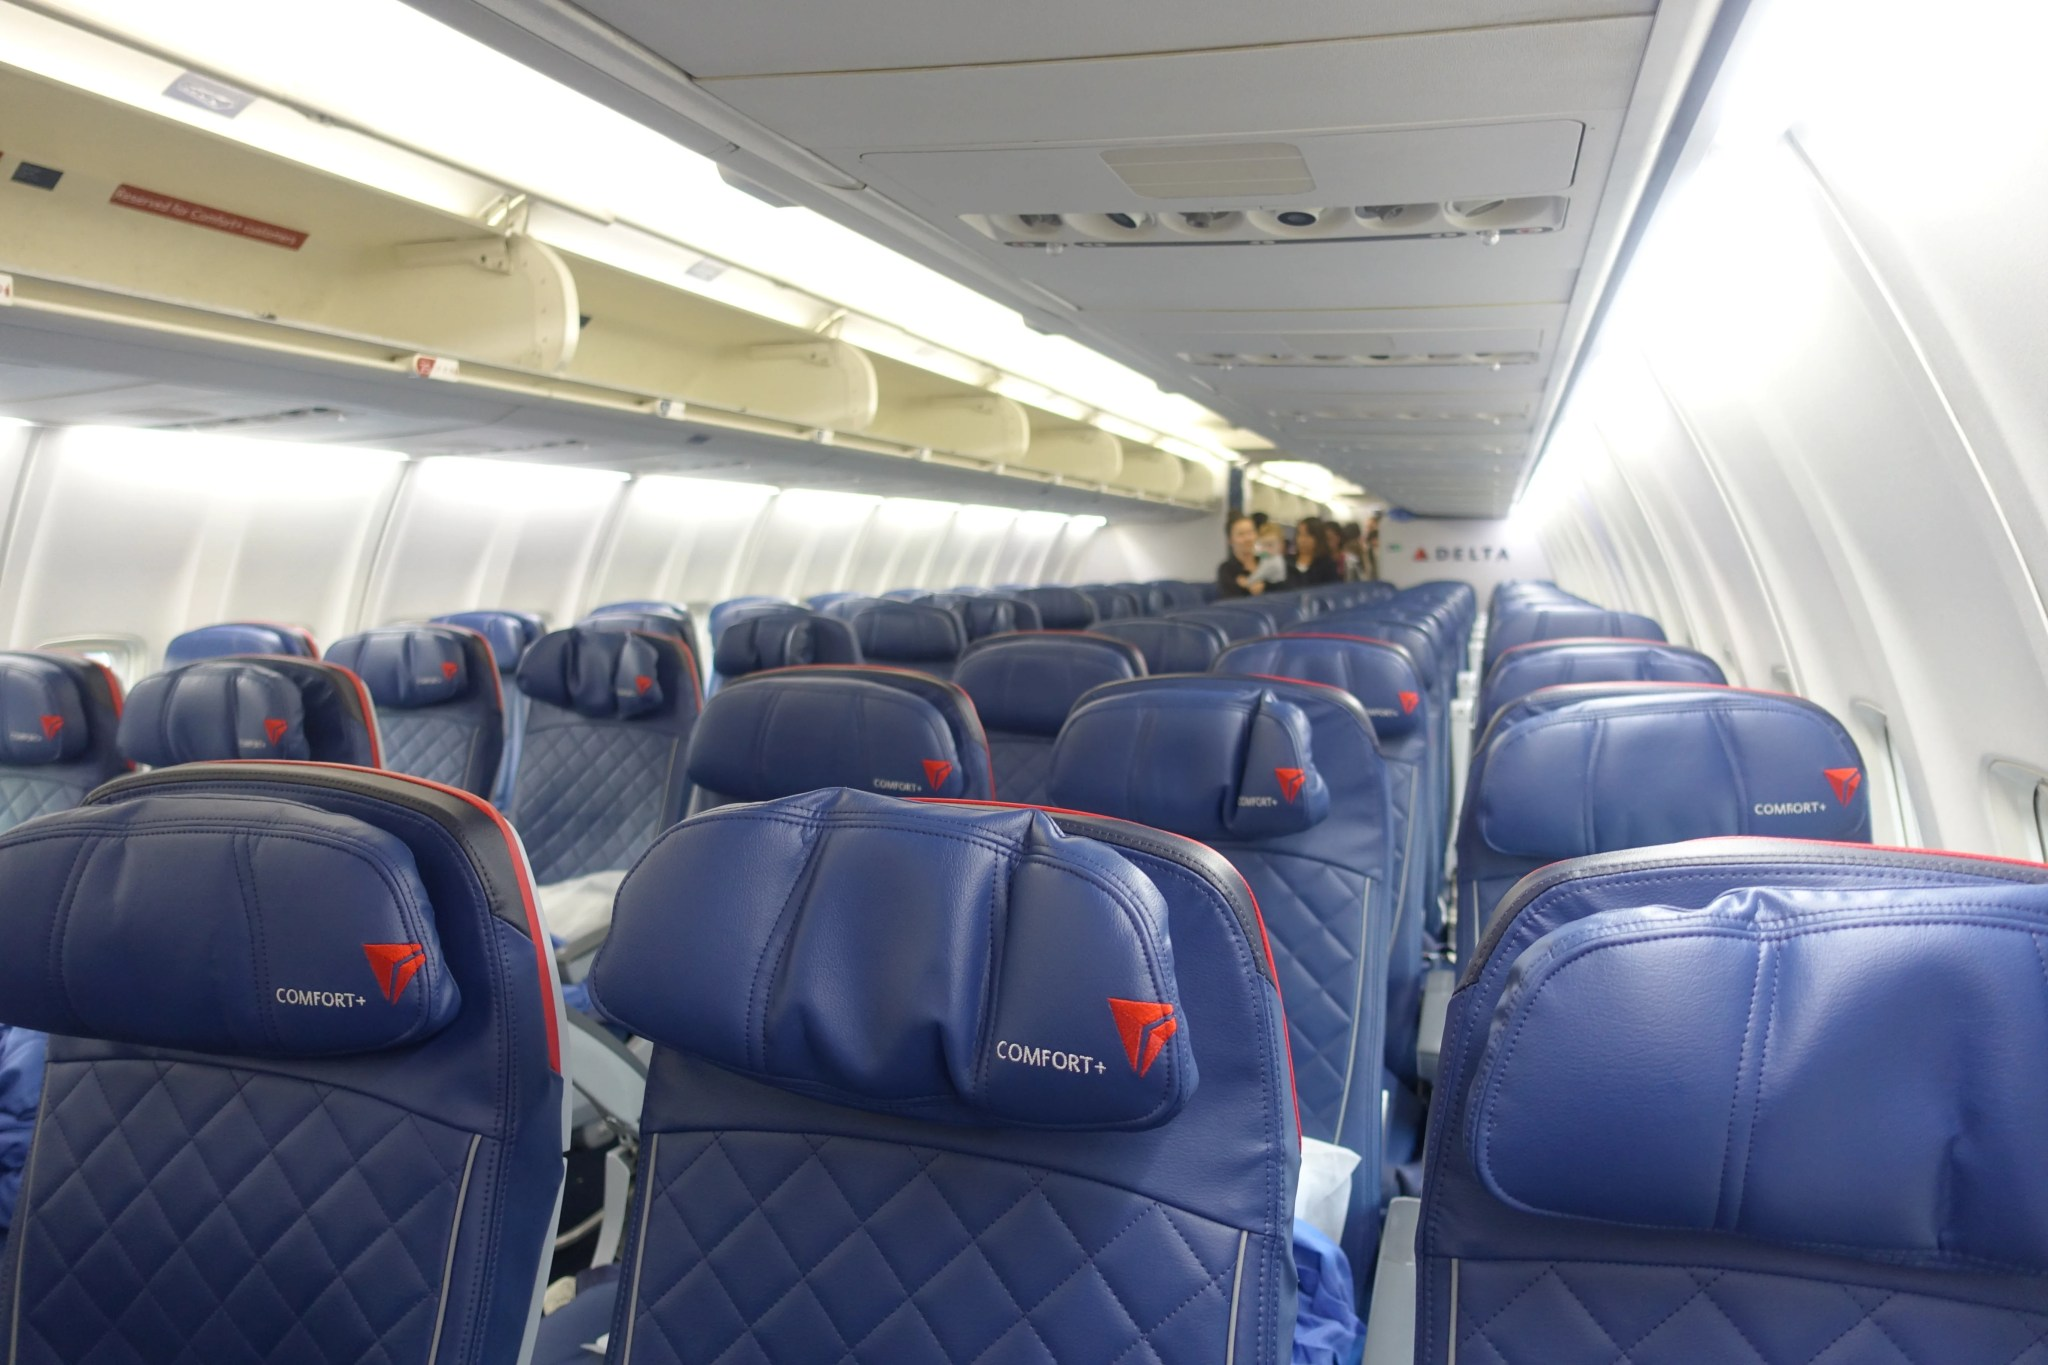 Review: Delta Comfort+ (757-200), San Francisco to New York